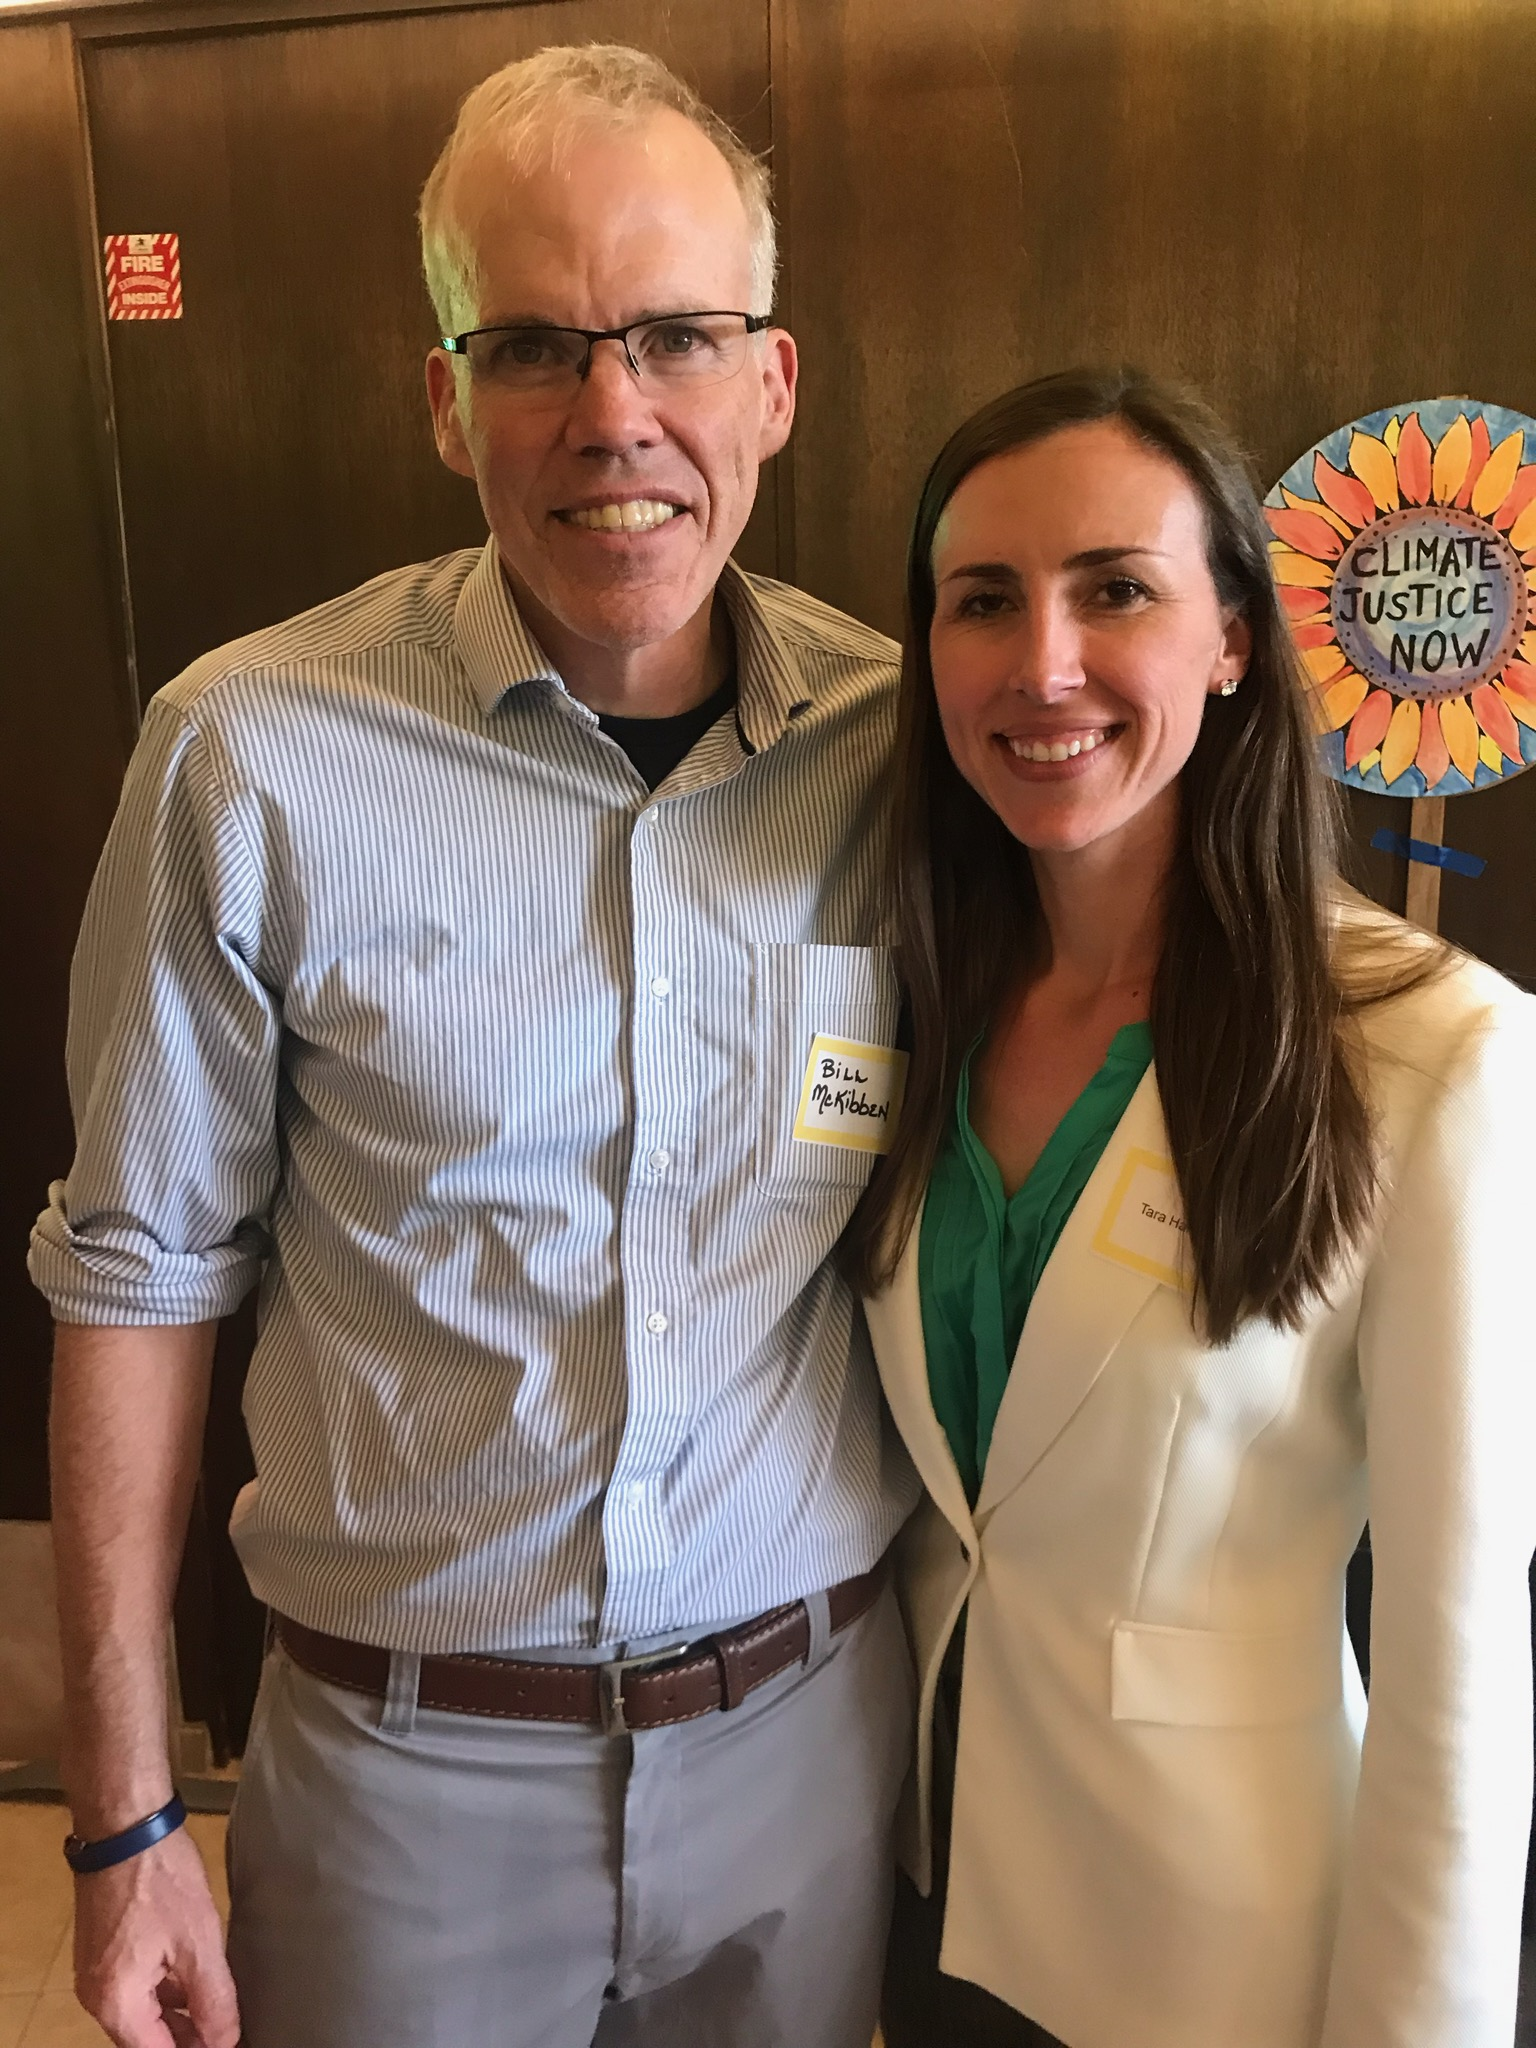 Tara Hammond with Bill McKibben, founder of 350.org and world renowned climate advocate.